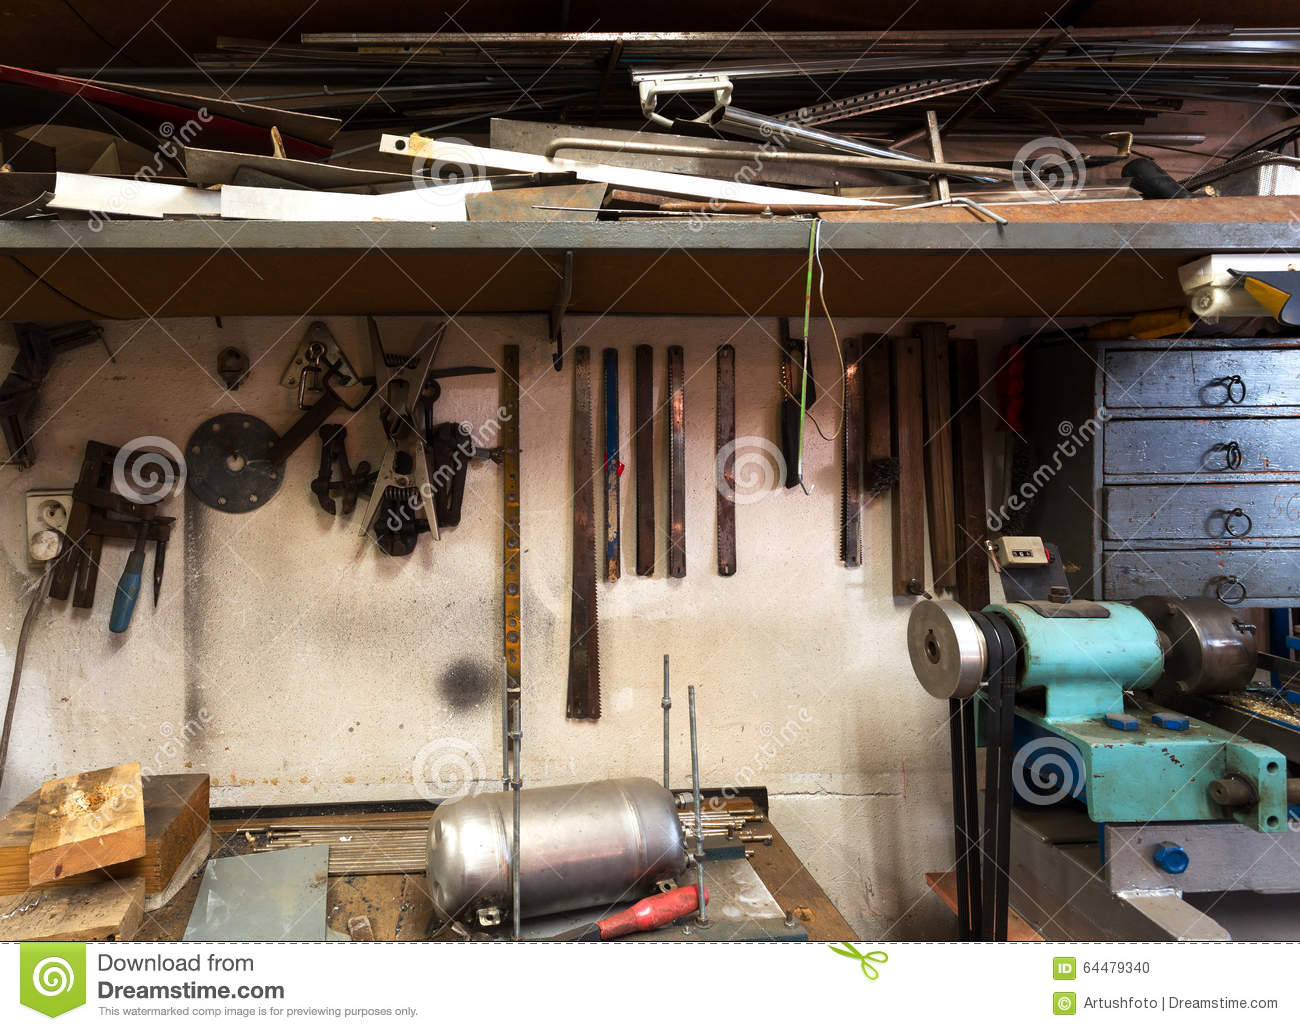 Real Domestic Home DIY Workshop Stock Photo - Image of metal